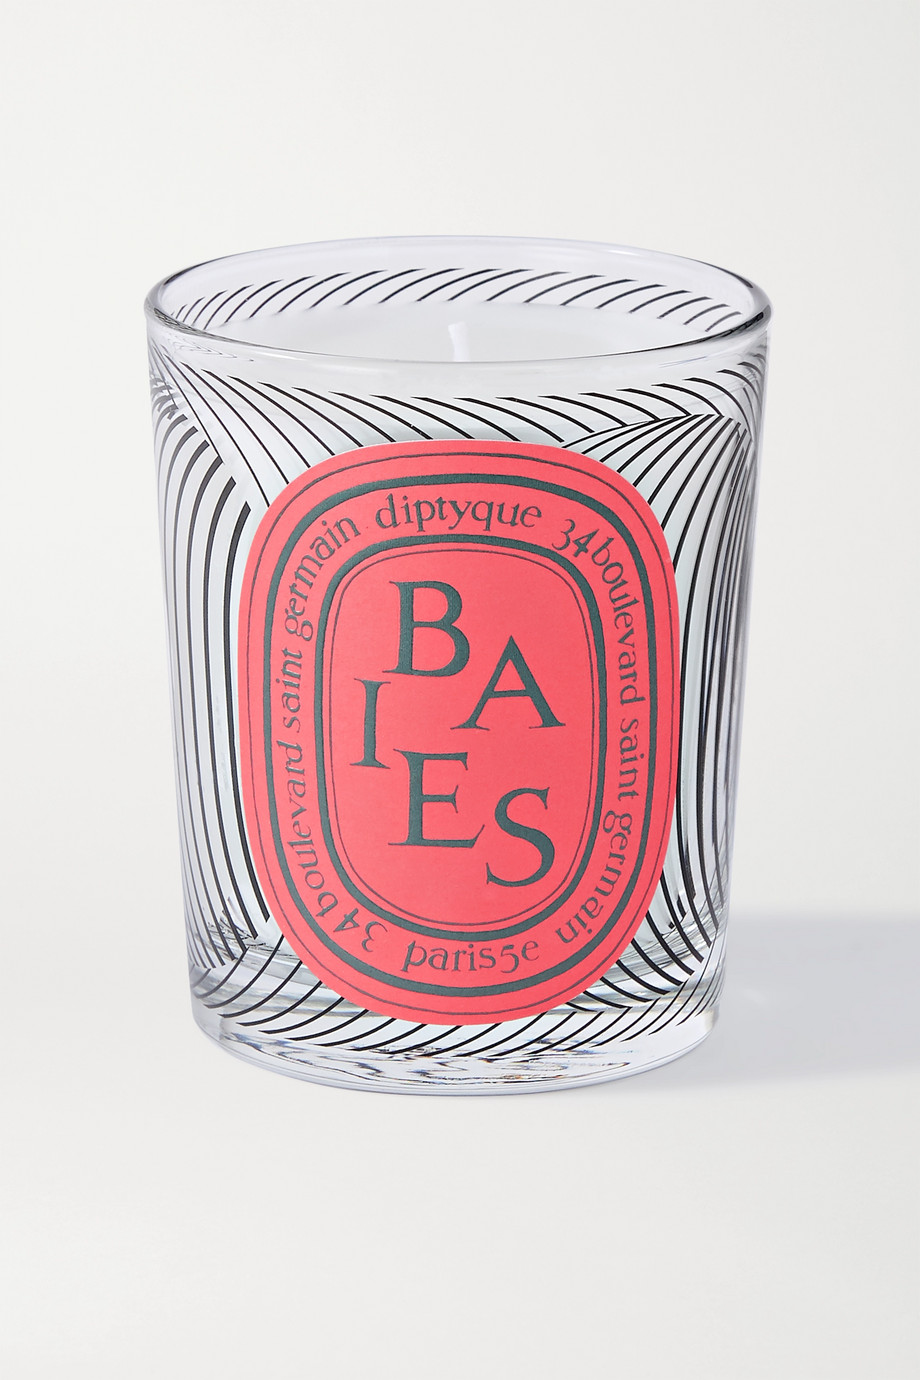 DIPTYQUE Graphic Collection scented candle - Baies, 190g